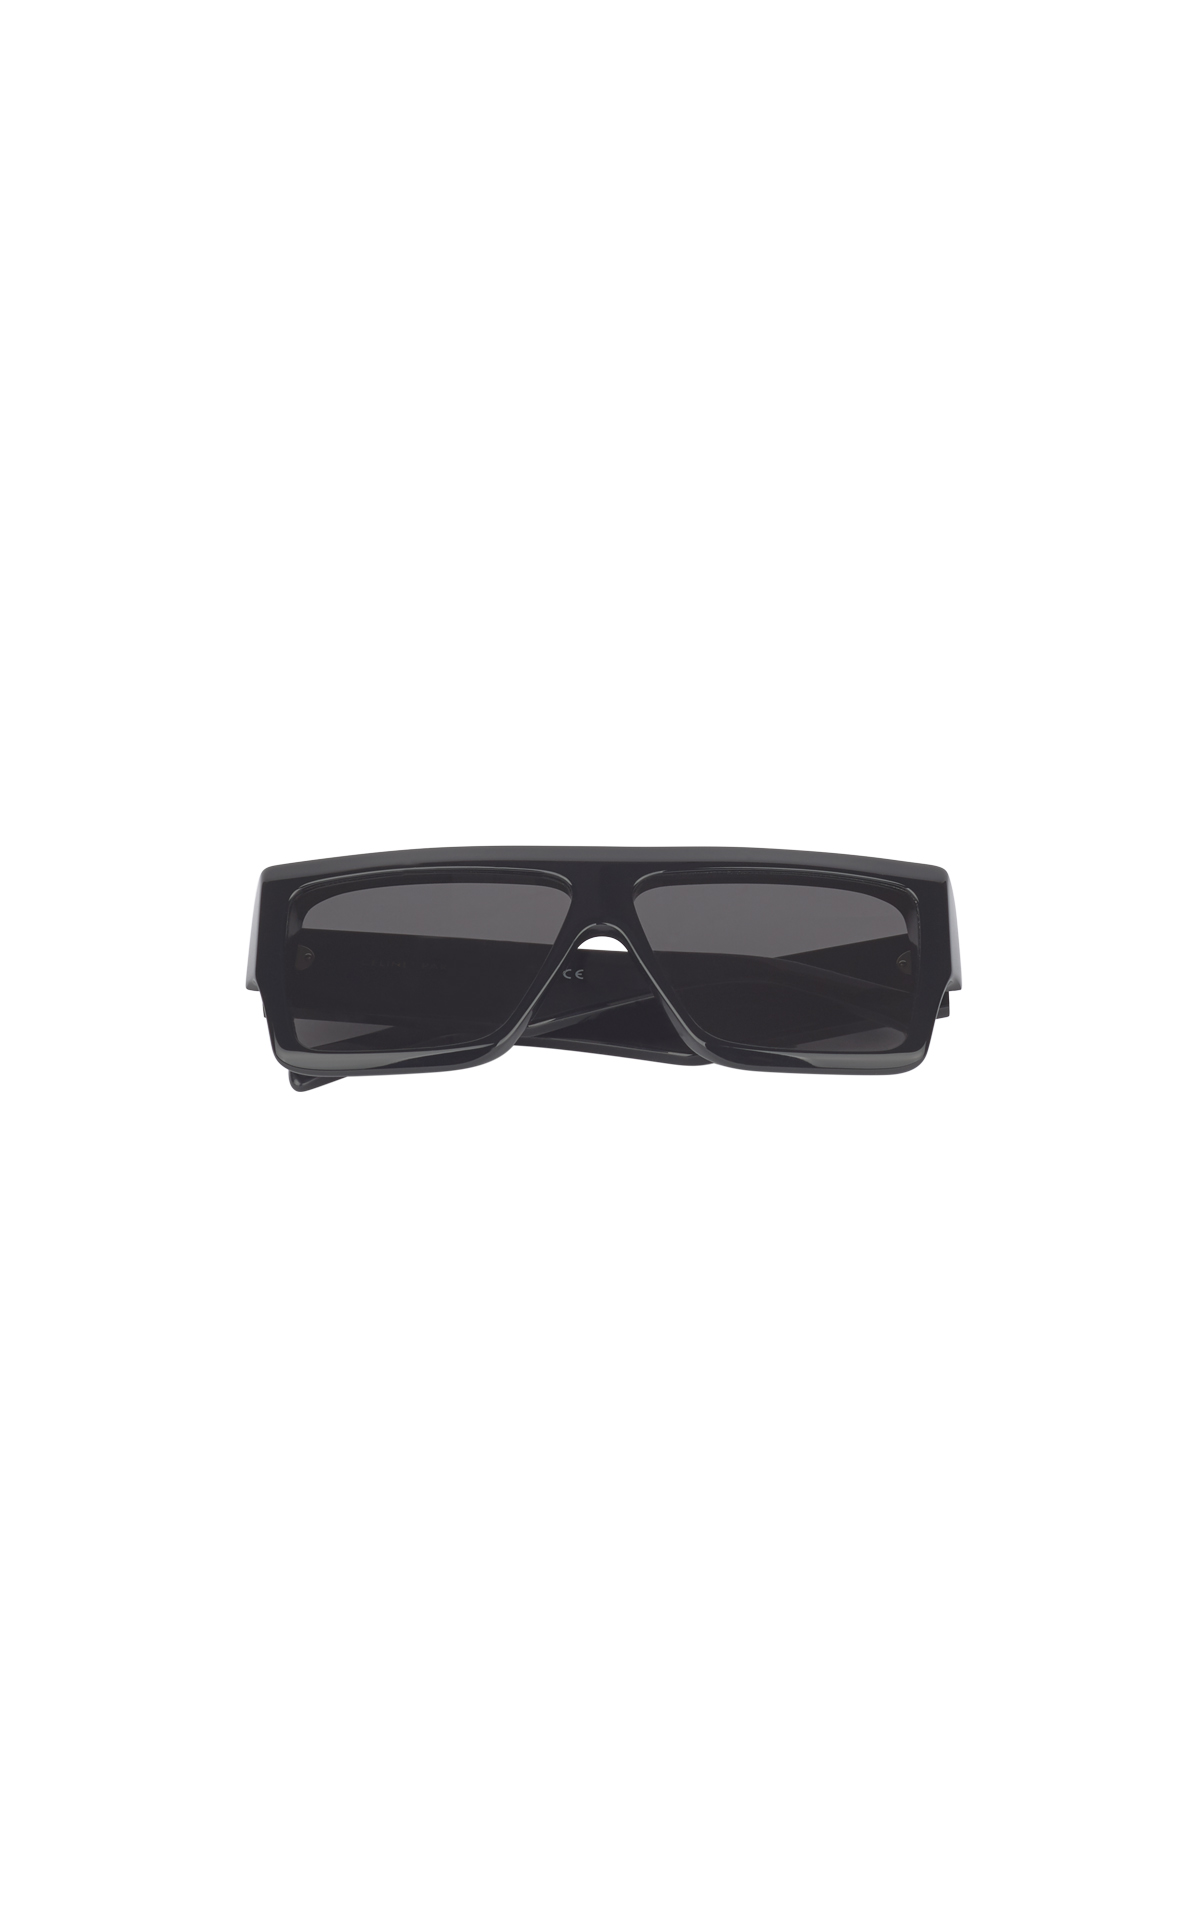 Black sunglasses Celine Cottet